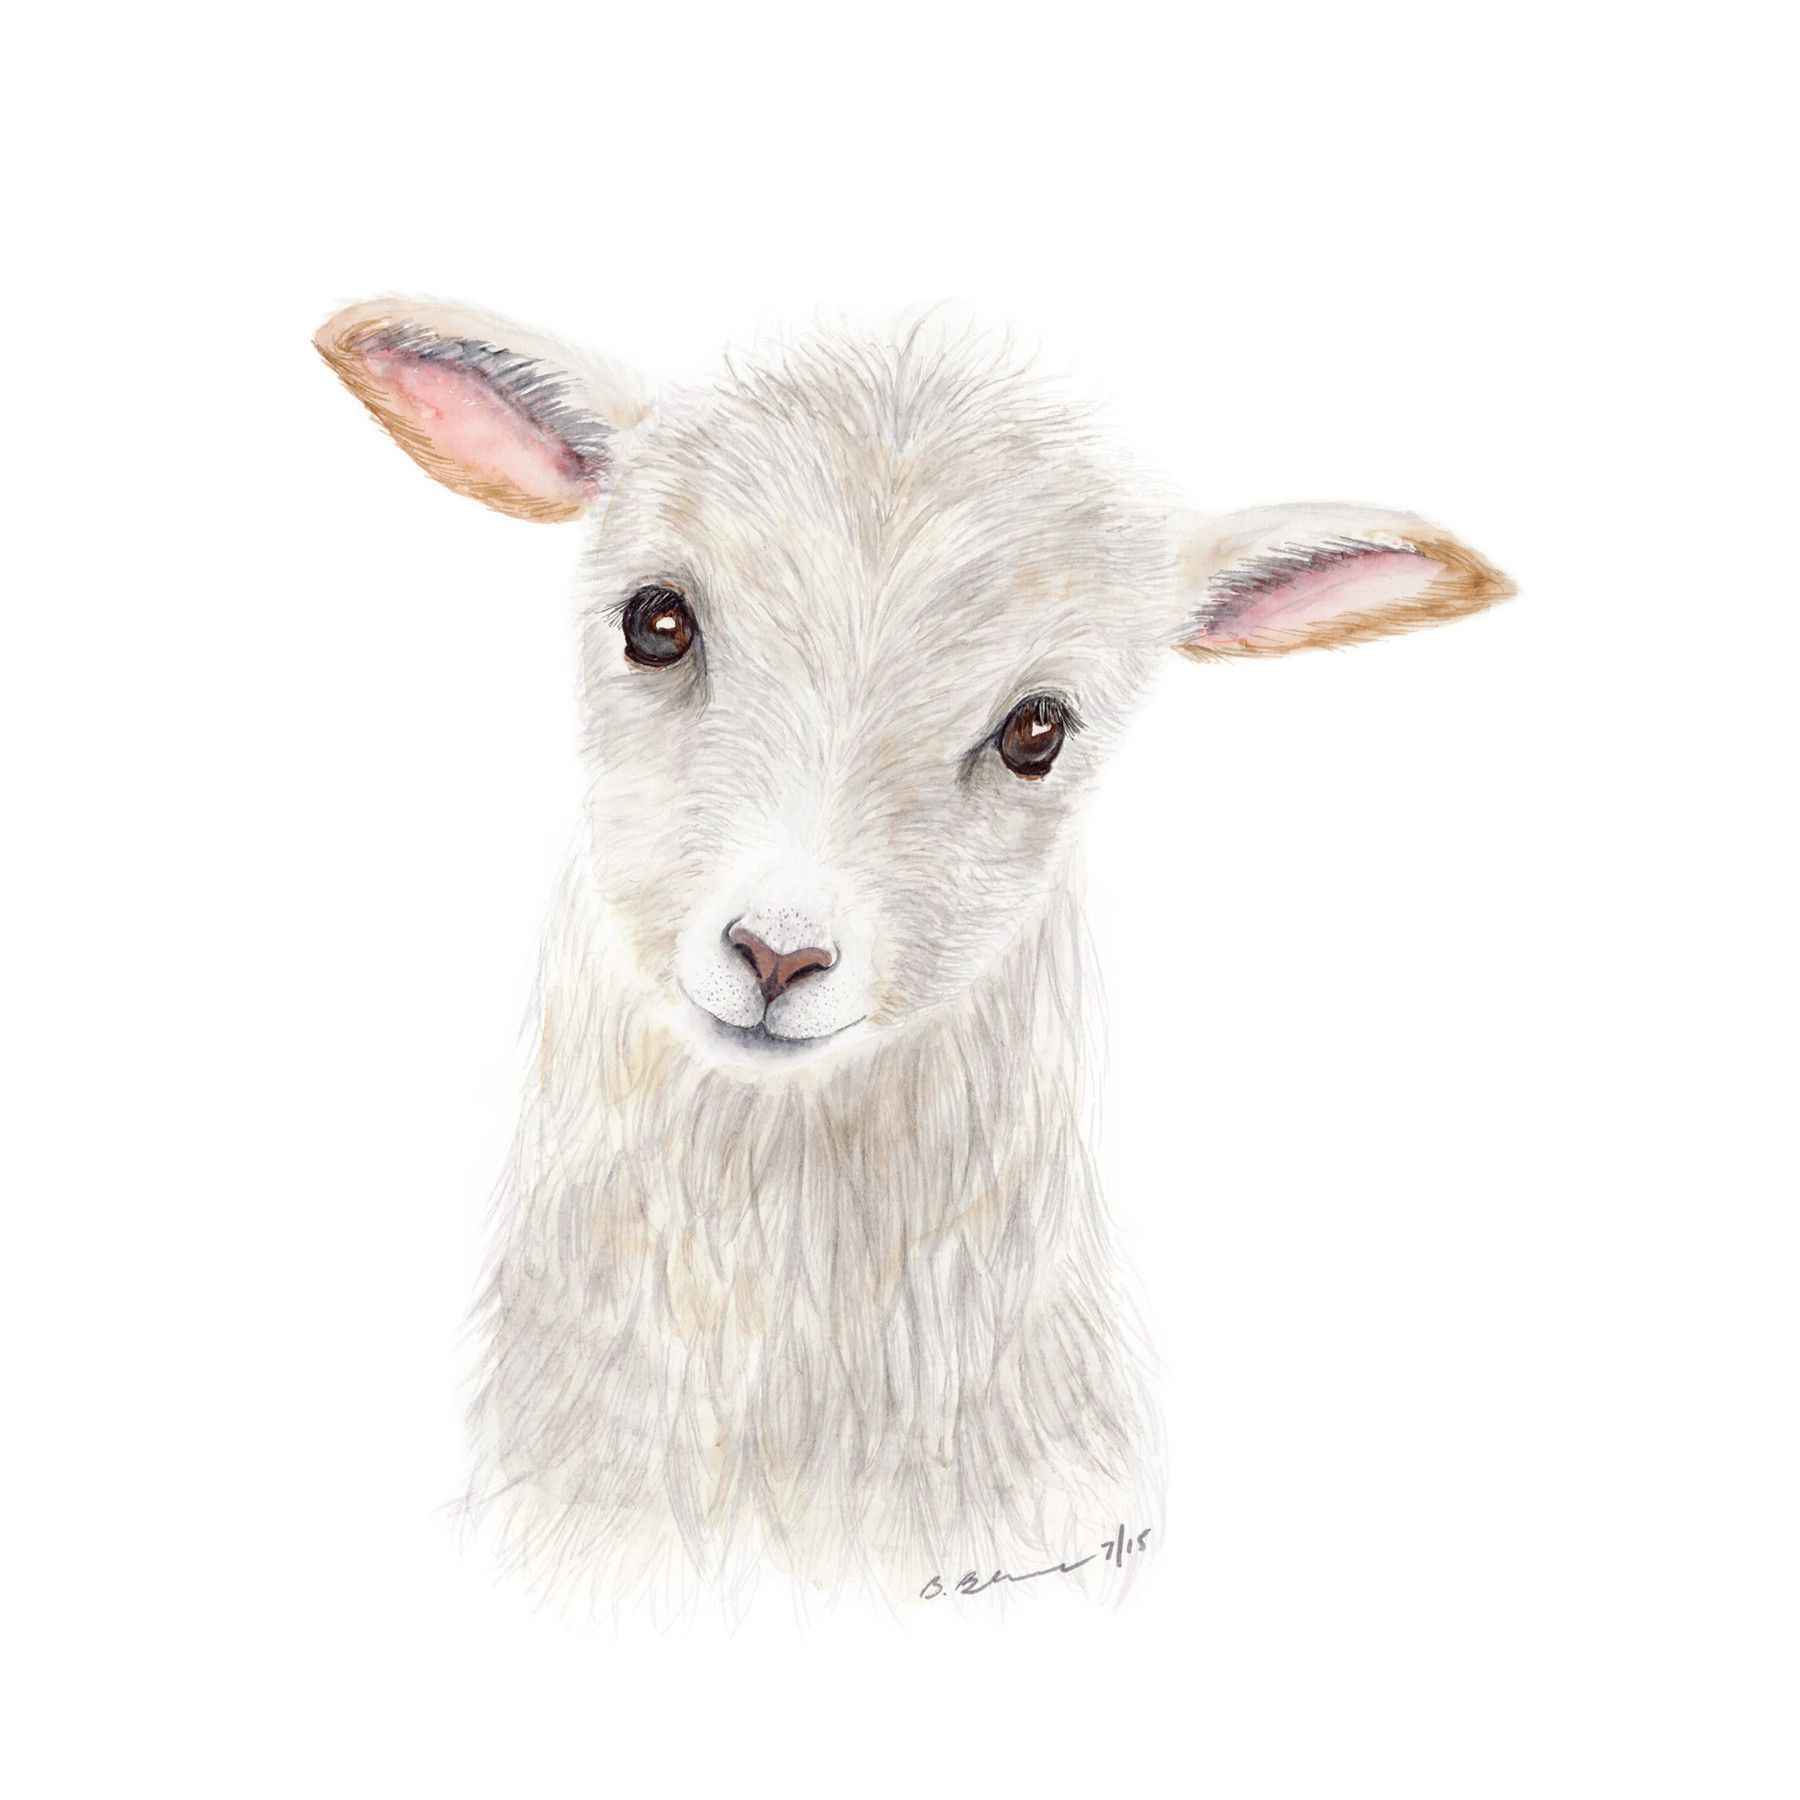 Baby Lamb Drawing Baby Lamb Portrait Baby Lamb White Nursery And Lambs